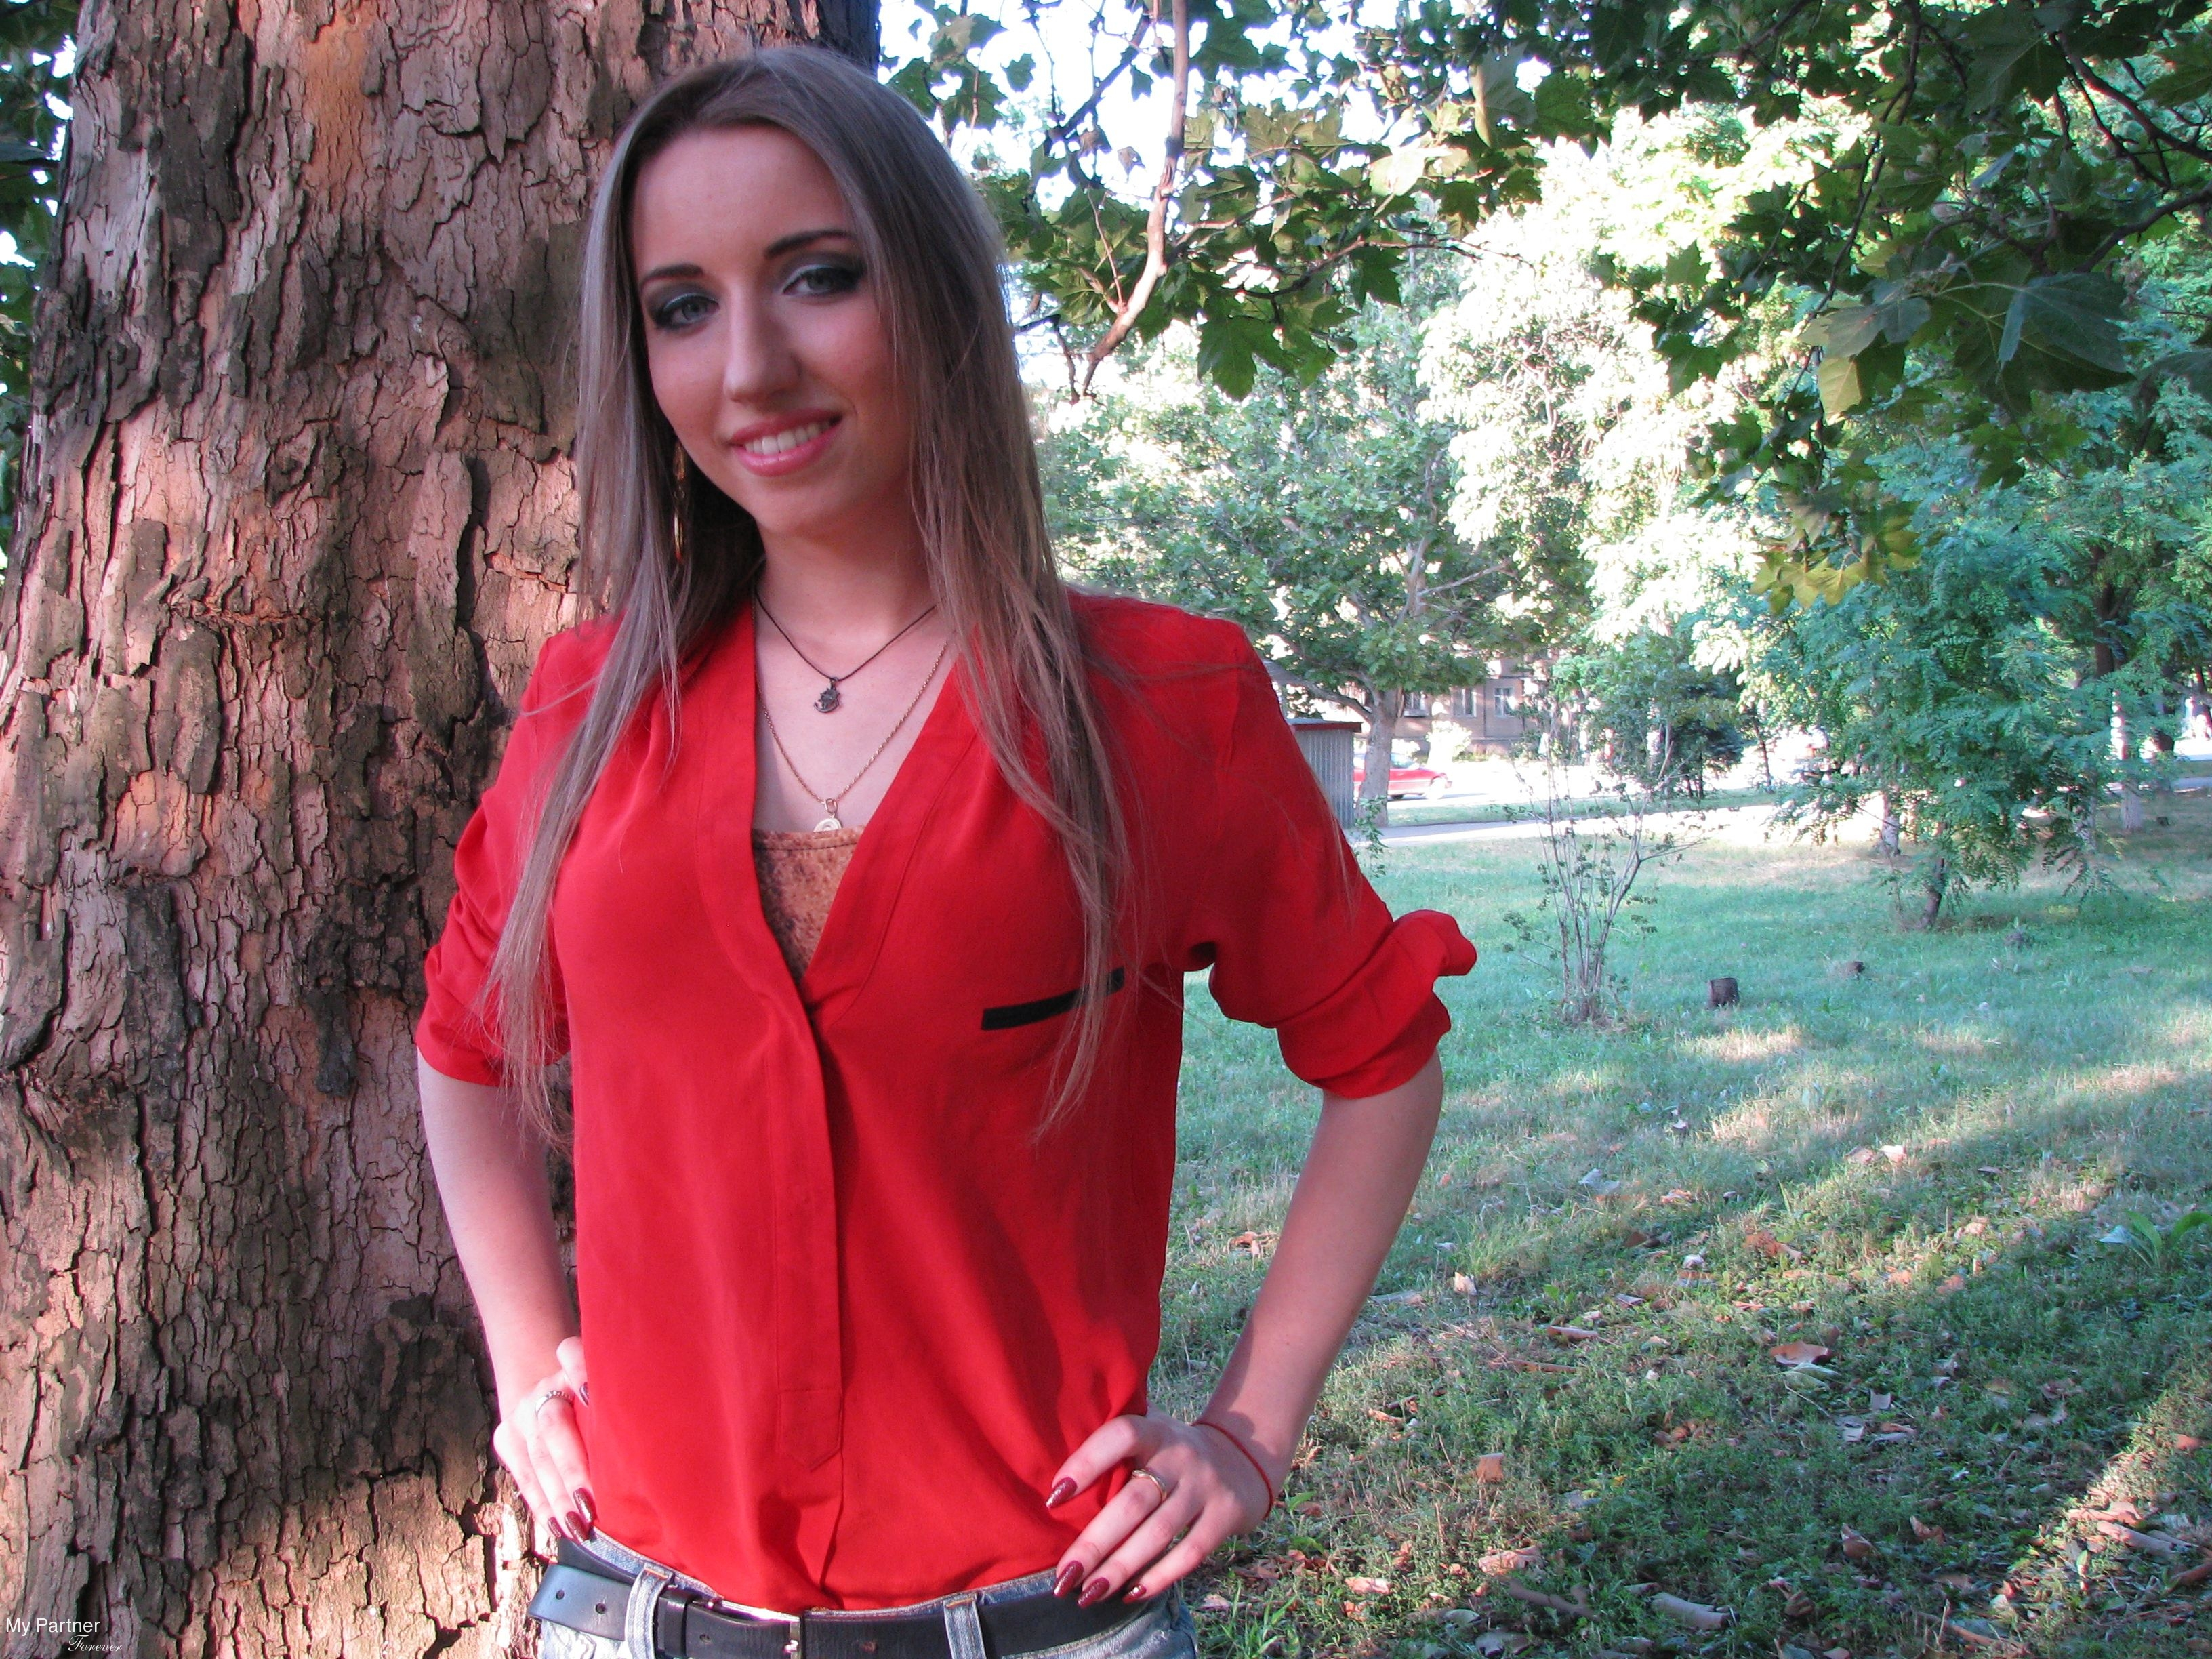 odessa mature women dating site More about arina from odessa the best and largest of dating sites focusing on russian women and russian online dating site that offers the most efficient way.